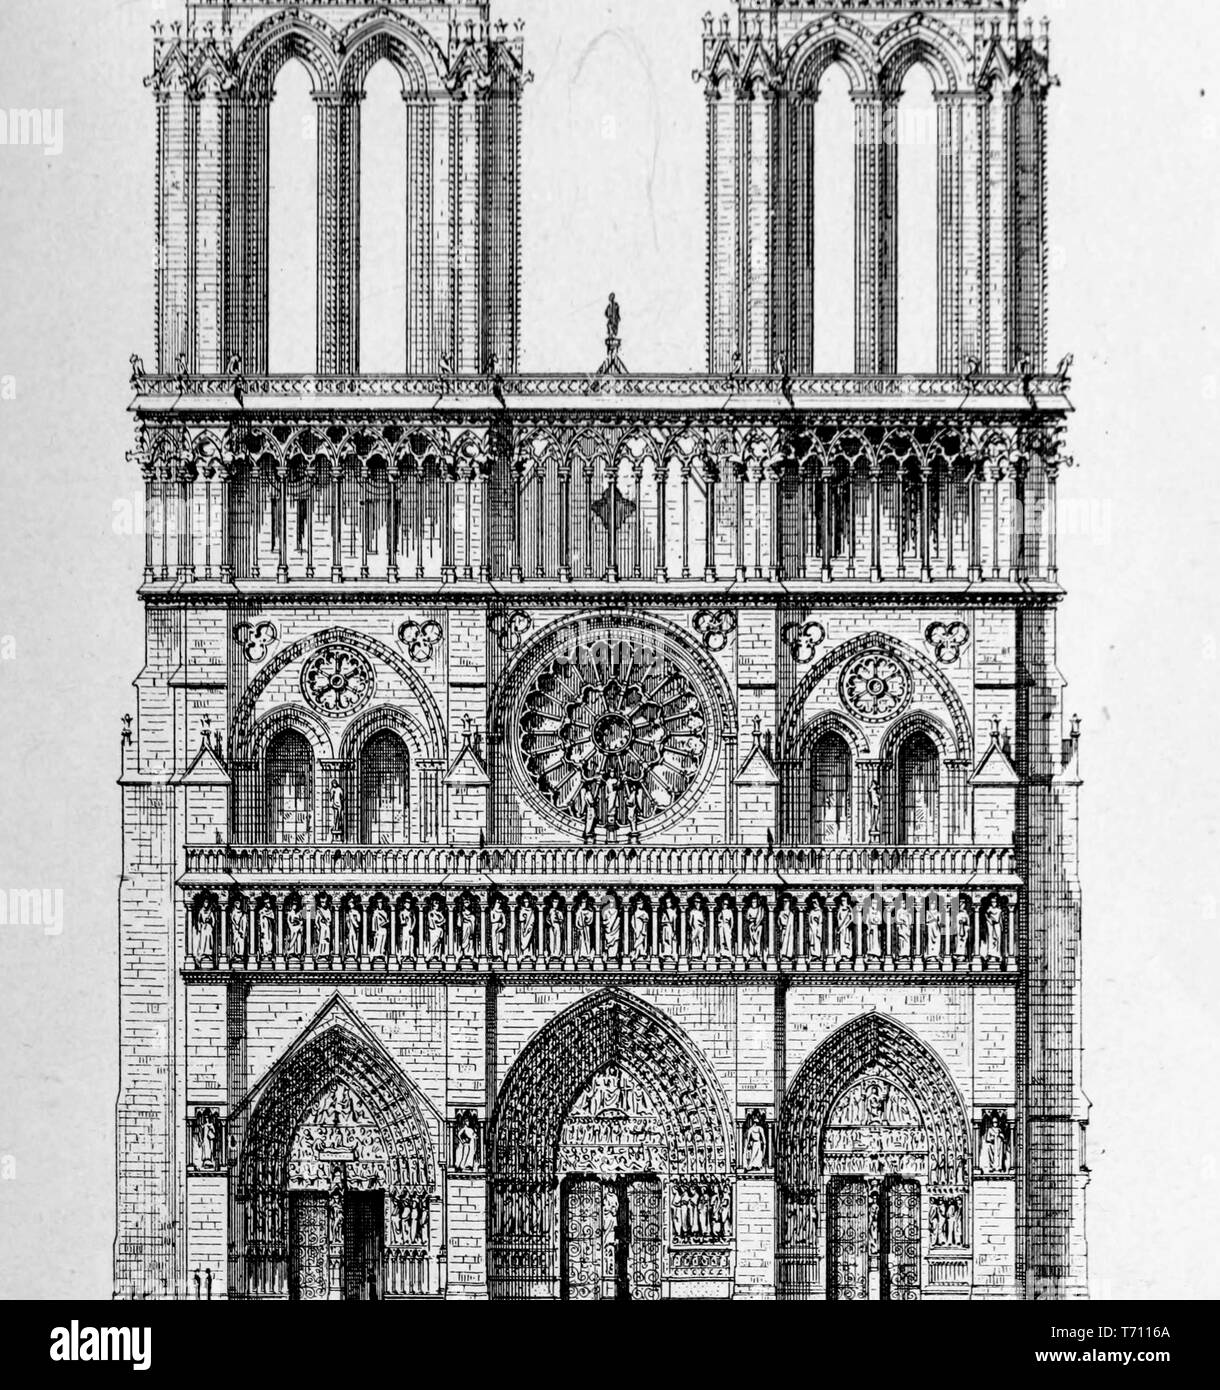 Engraved illustration of the Notre-Dame, medieval Catholic cathedral in Paris, France, from the book 'L'architecture' by Anatole de Baudot, 1916. Courtesy Internet Archive. () Stock Photo